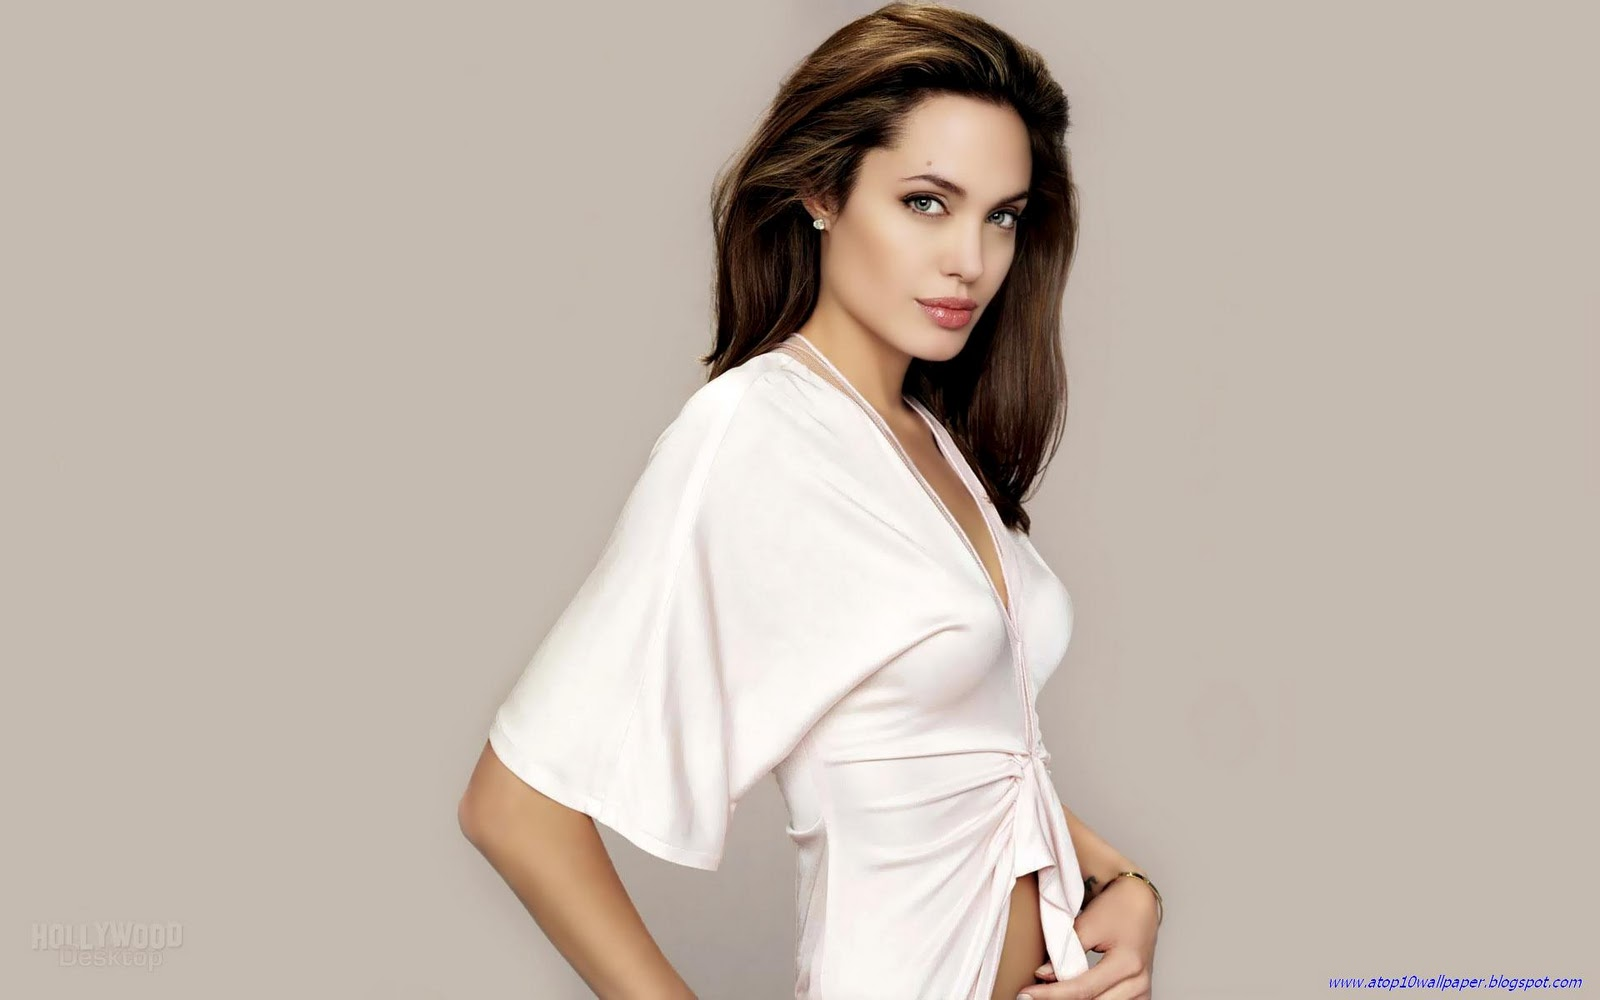 palemorningdun: angelina jolie's hot wallpaper with (1920x1200) high